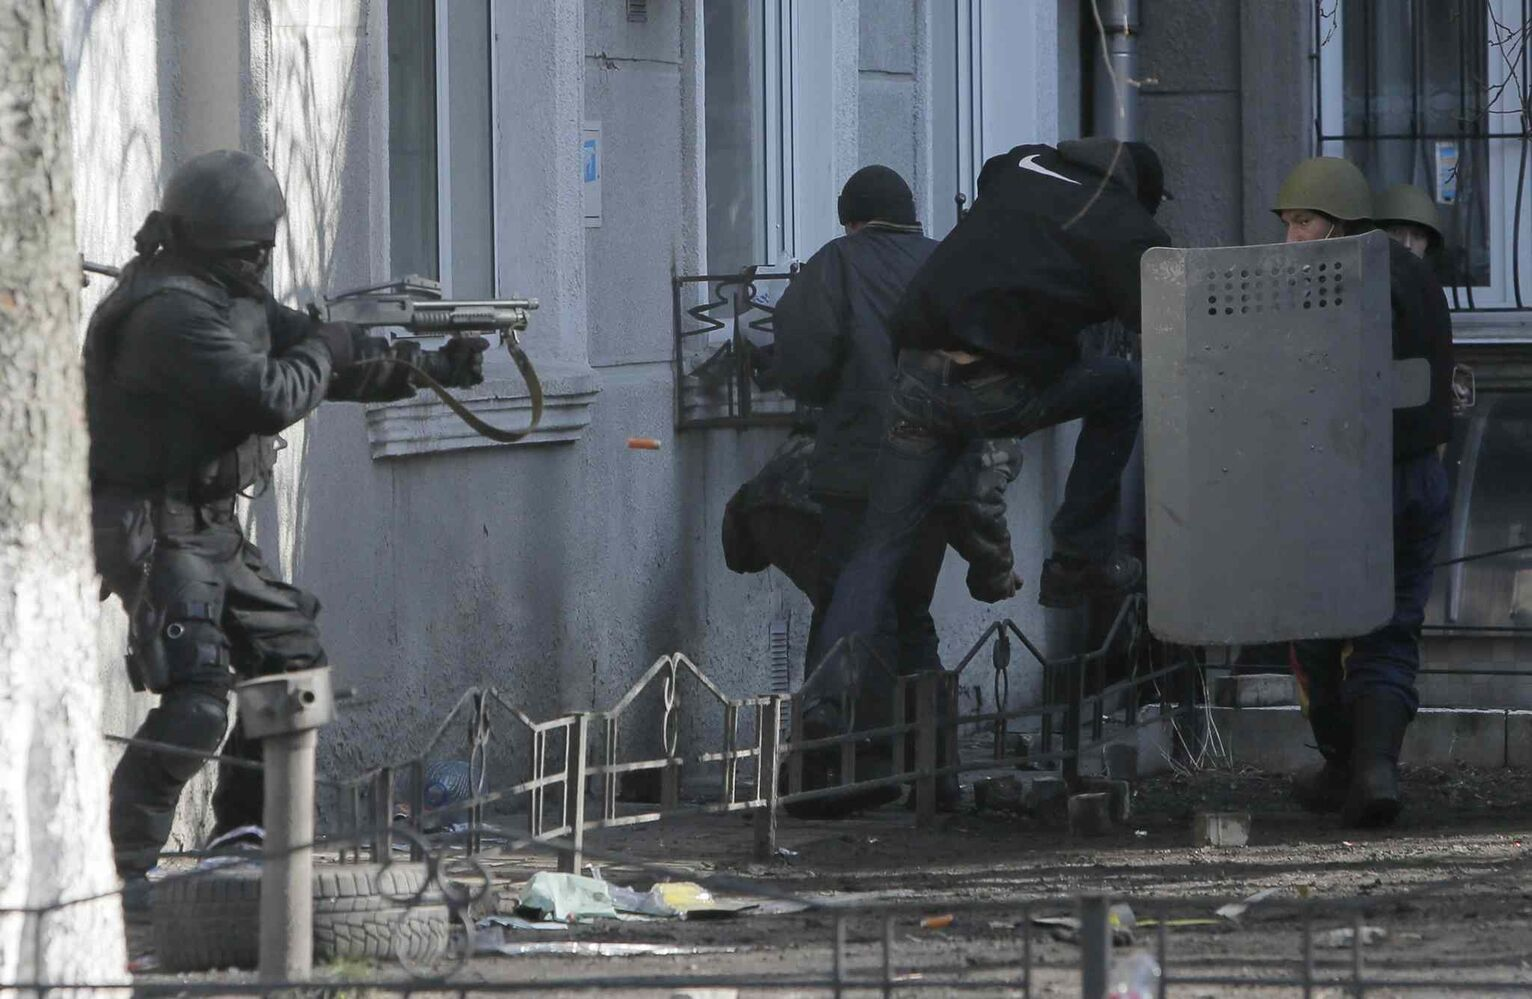 A riot police officer shoots at protesters outside Ukraine's parliament in Kyiv on Tuesday. (Efrem Lukatsky / The Associated Press)